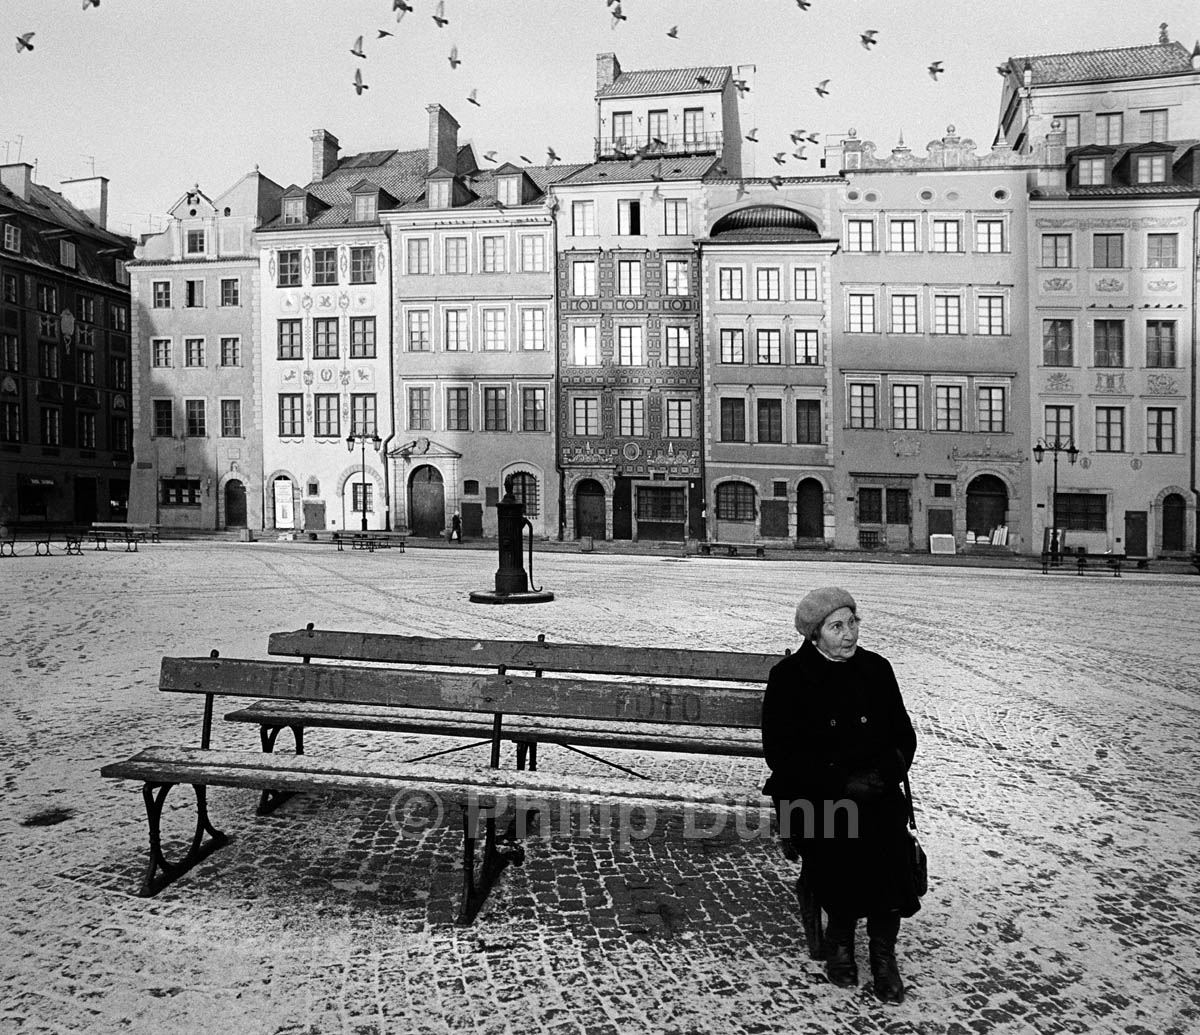 An old woman in hat sits on a bench in the snow Starigrad Square, Poland in Winter